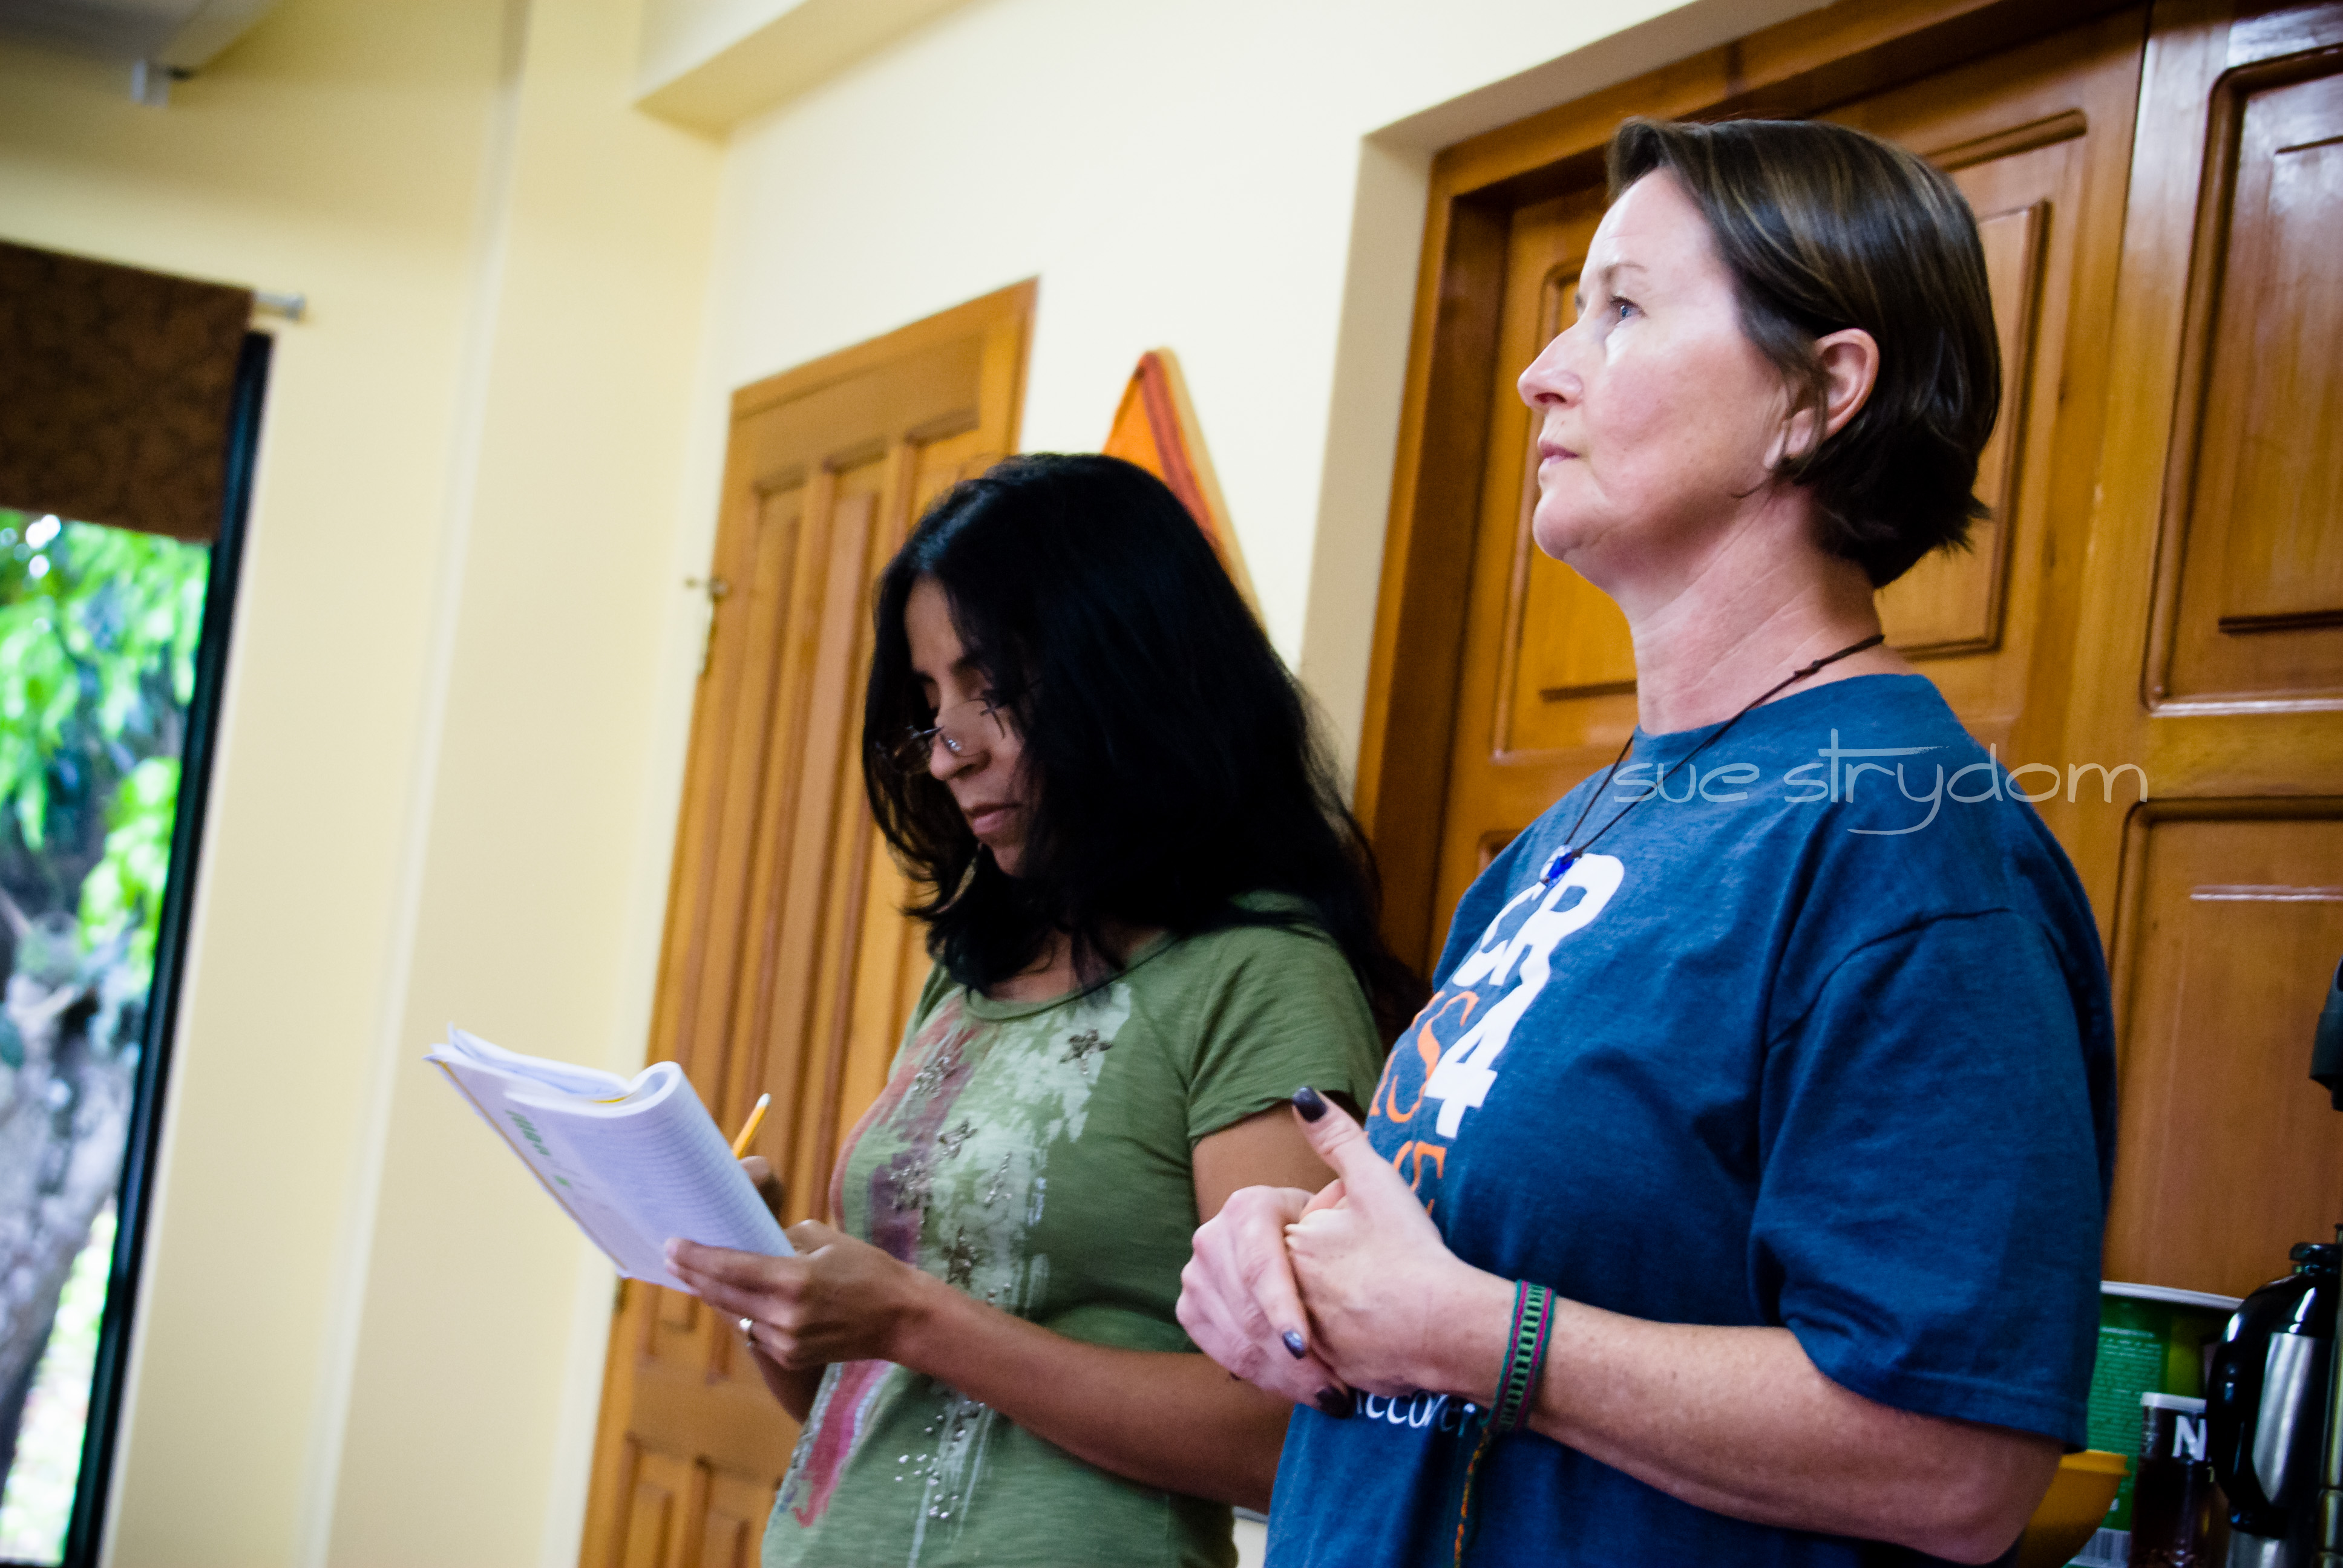 Stacey, telling her story at the CR meeting... with Gioconda's help.